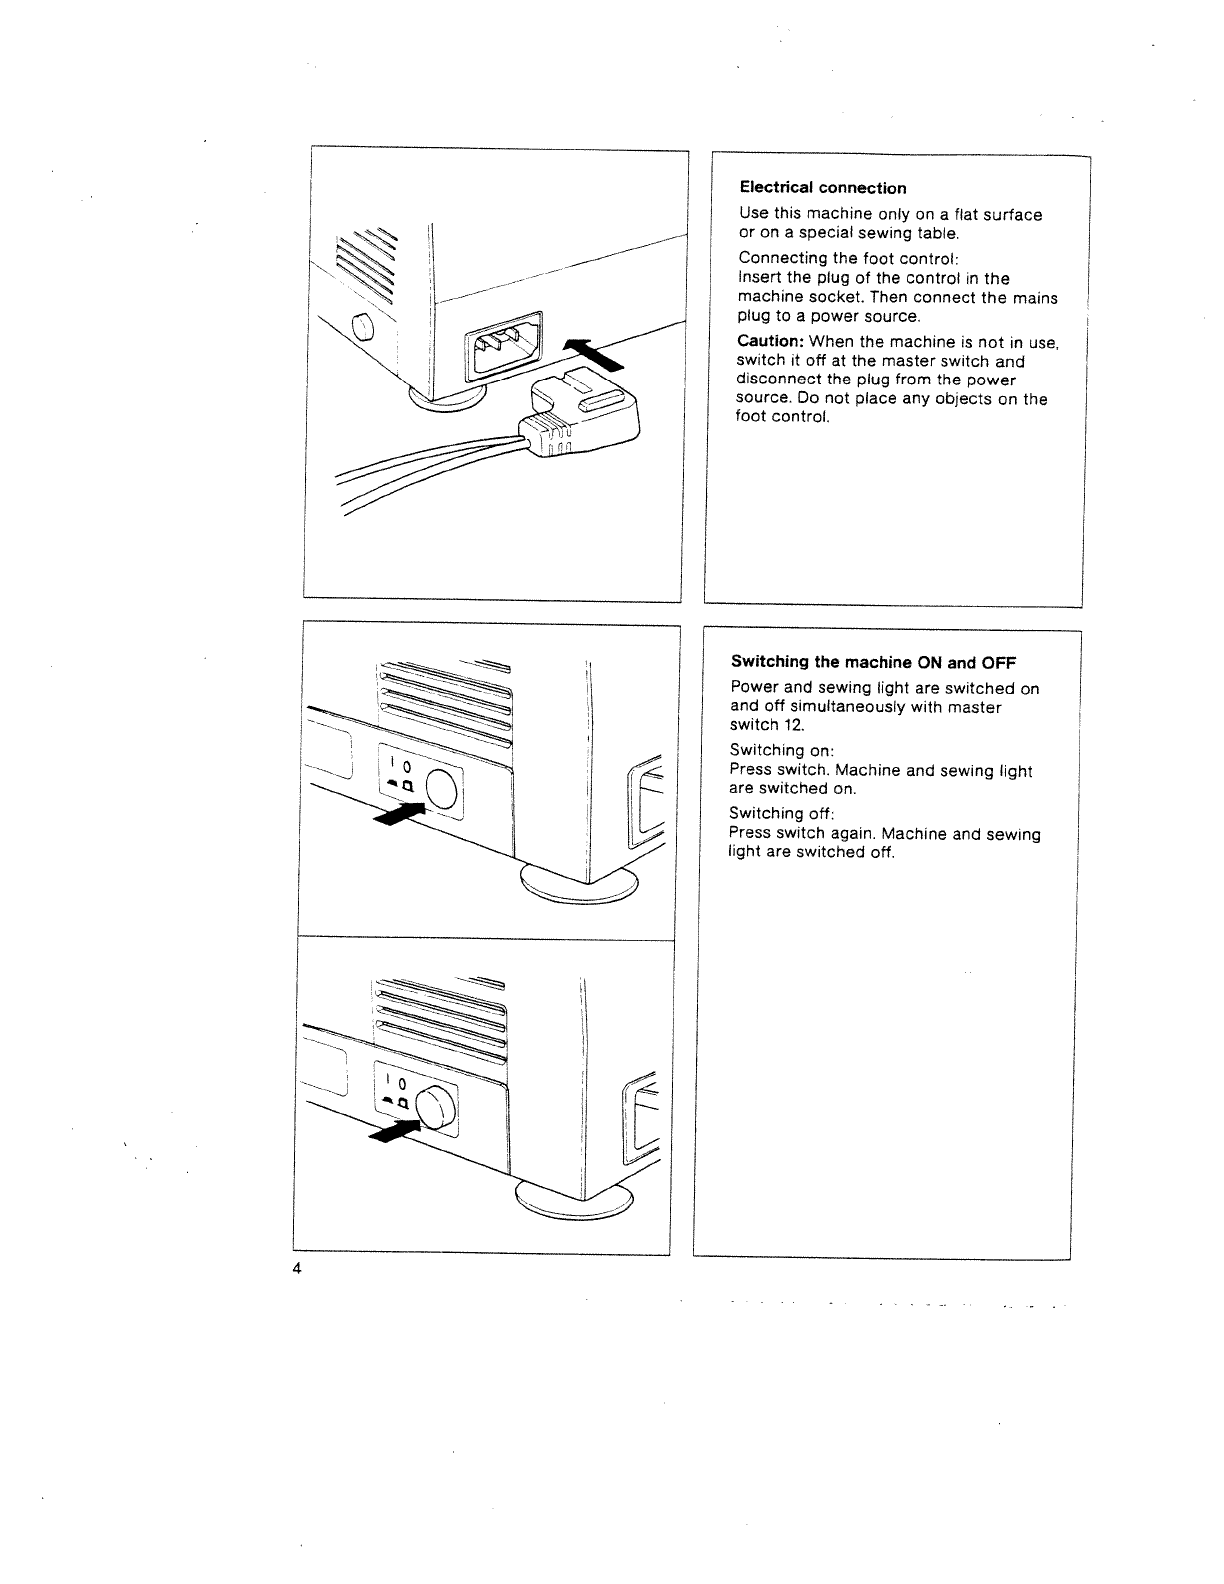 User manual Pfaff hobbylock 786 (34 pages)